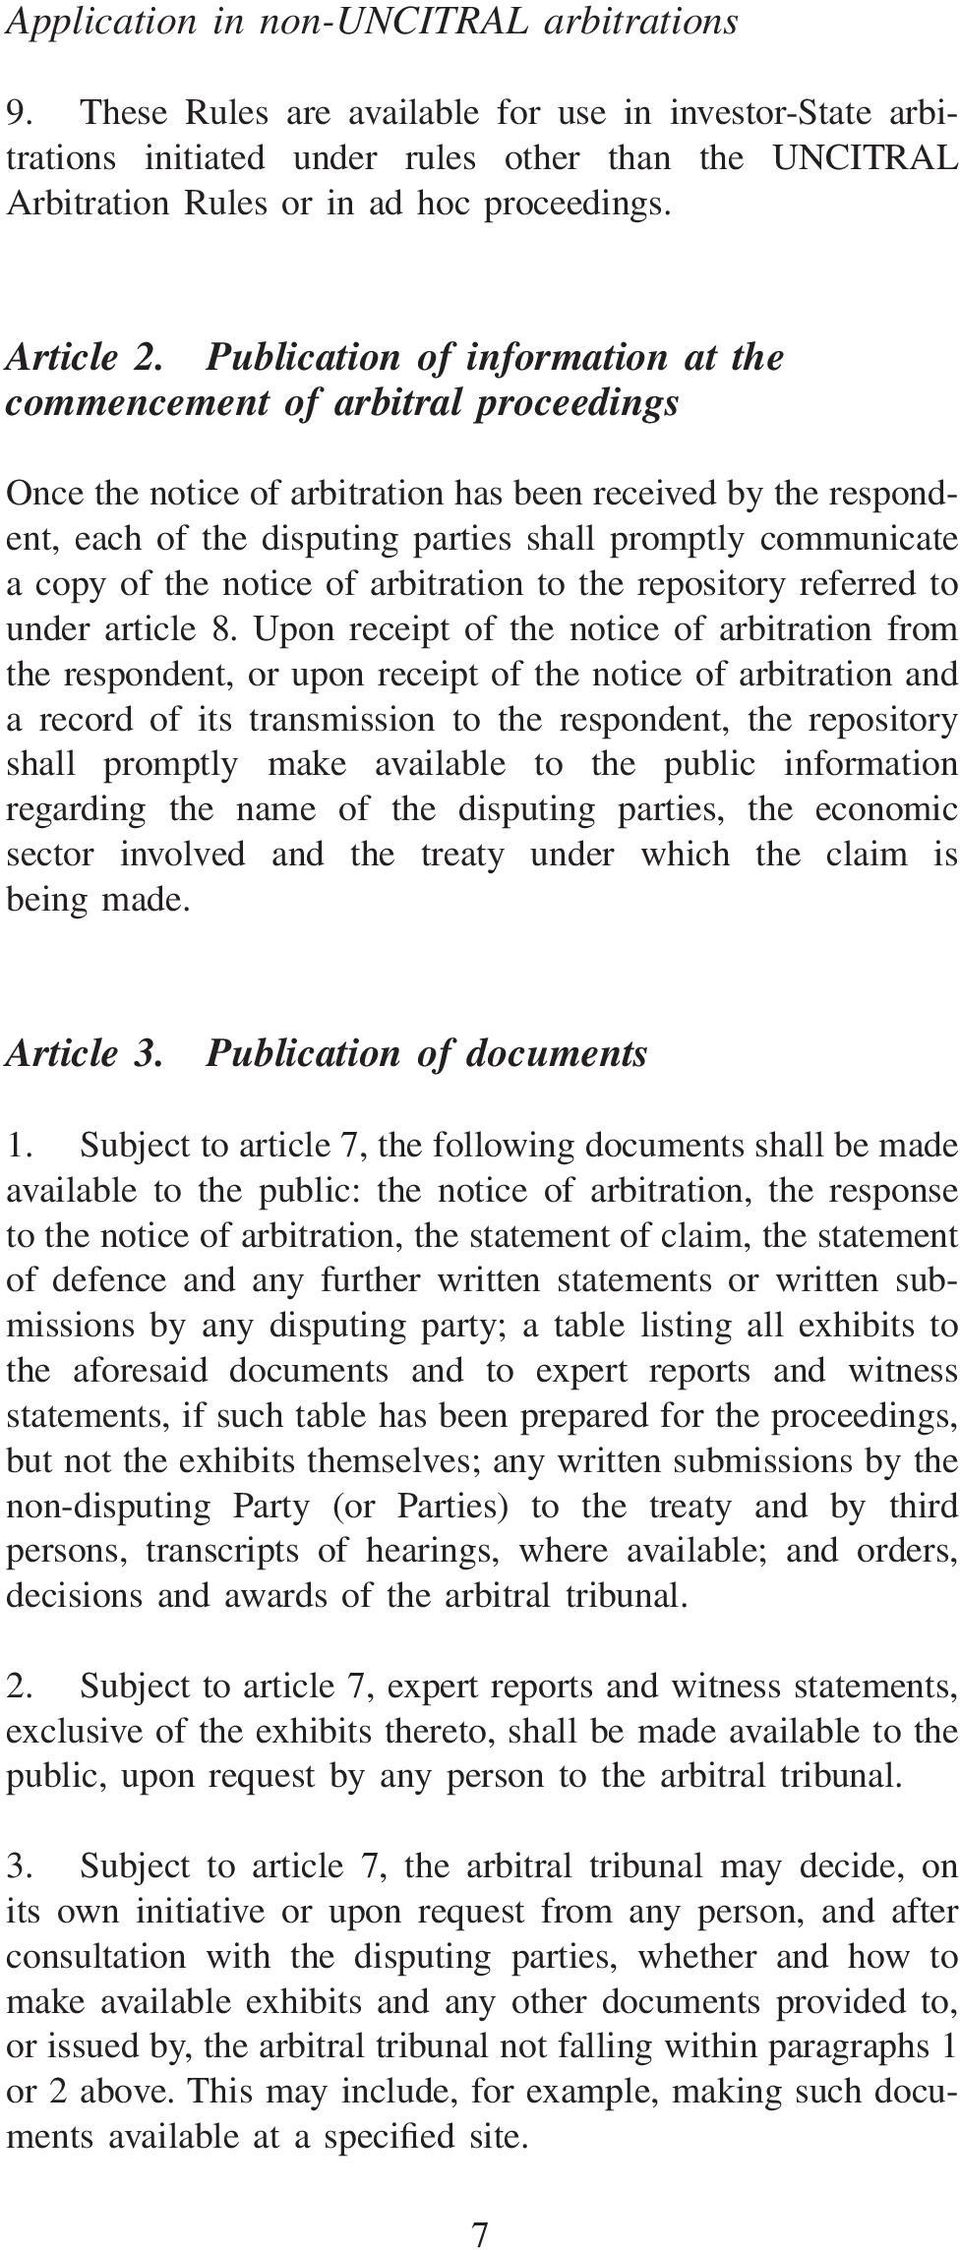 Publication of information at the commencement of arbitral proceedings Once the notice of arbitration has been received by the respondent, each of the disputing parties shall promptly communicate a